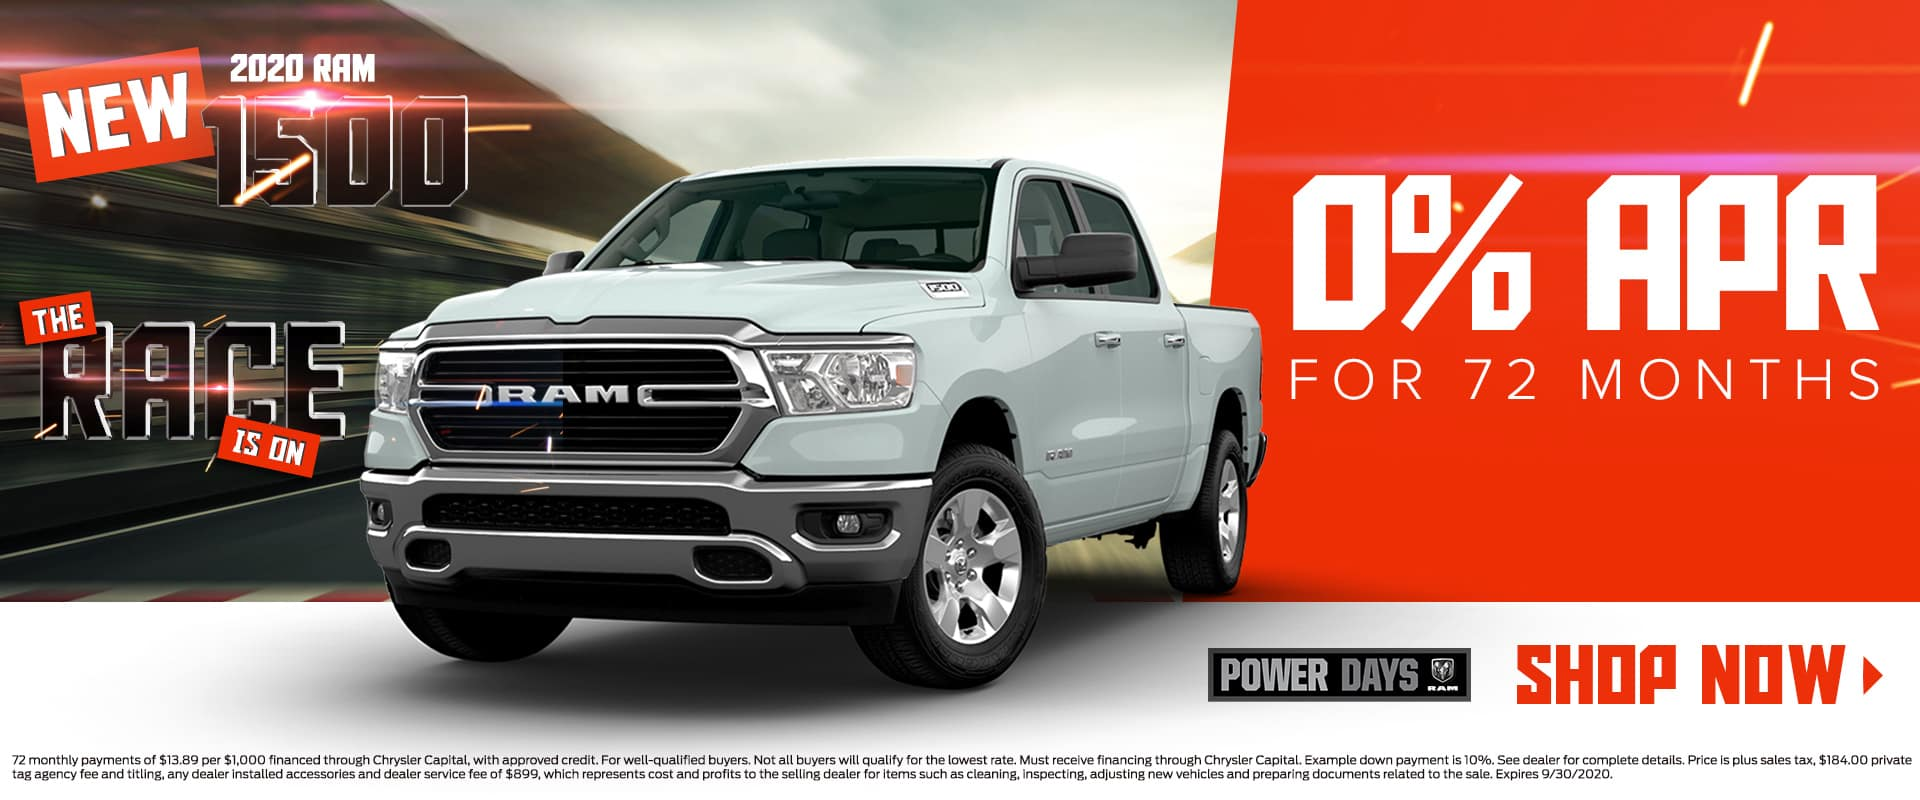 New 2020 RAM 1500 | 0% For 72 Months | The Race Is On | RAM Power Days